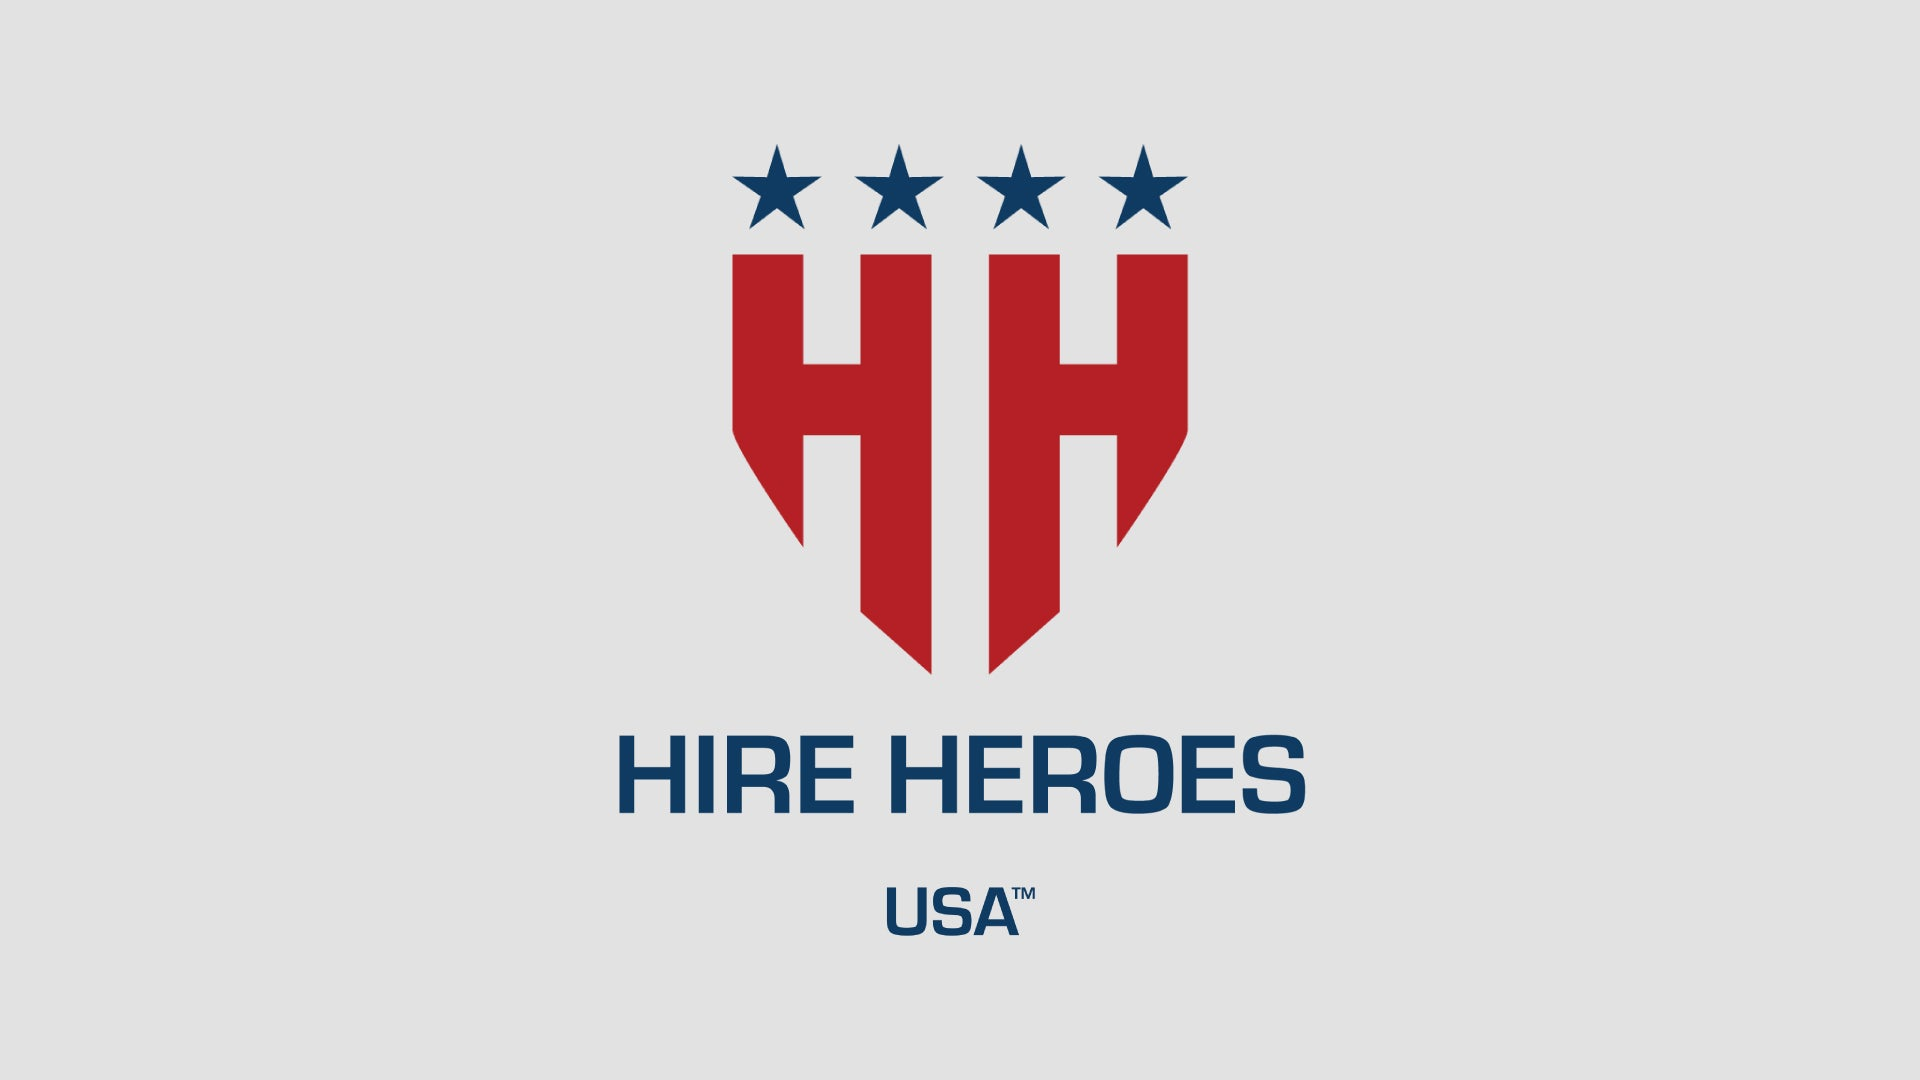 hire heros usa logo